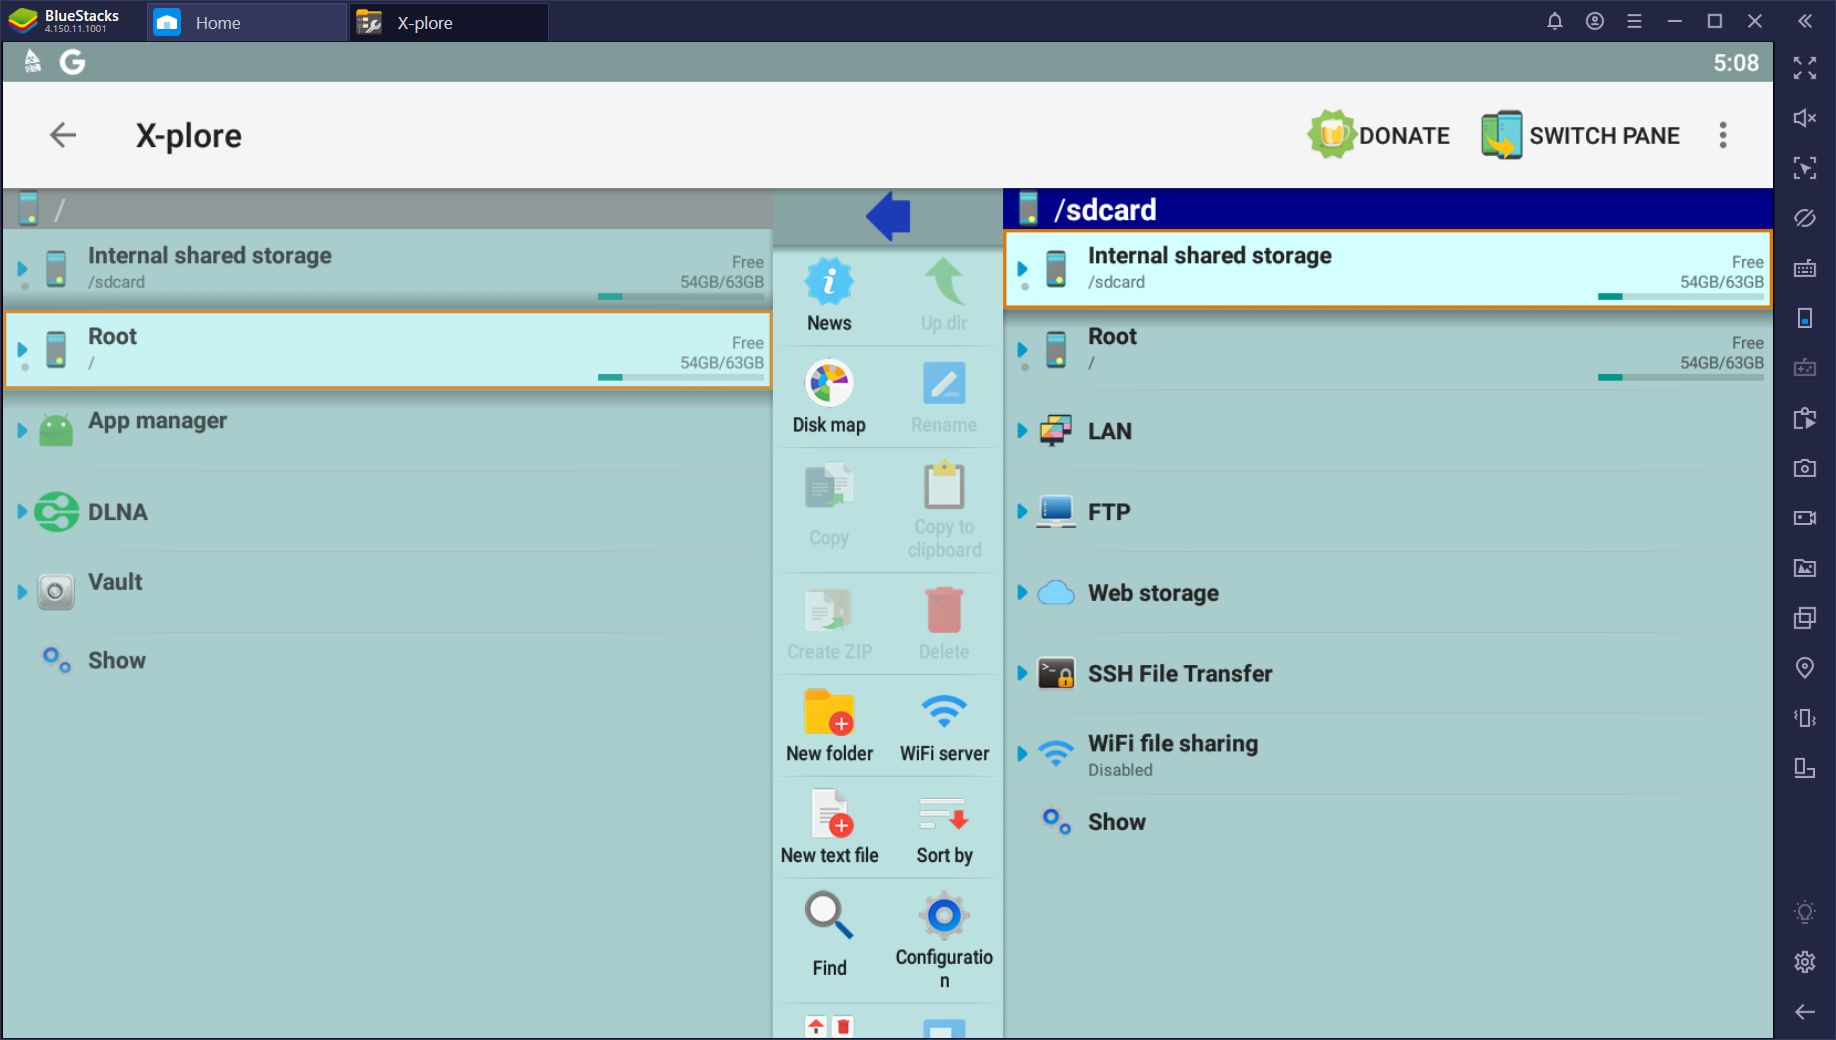 How to Easily Free Up Disk Space in BlueStacks